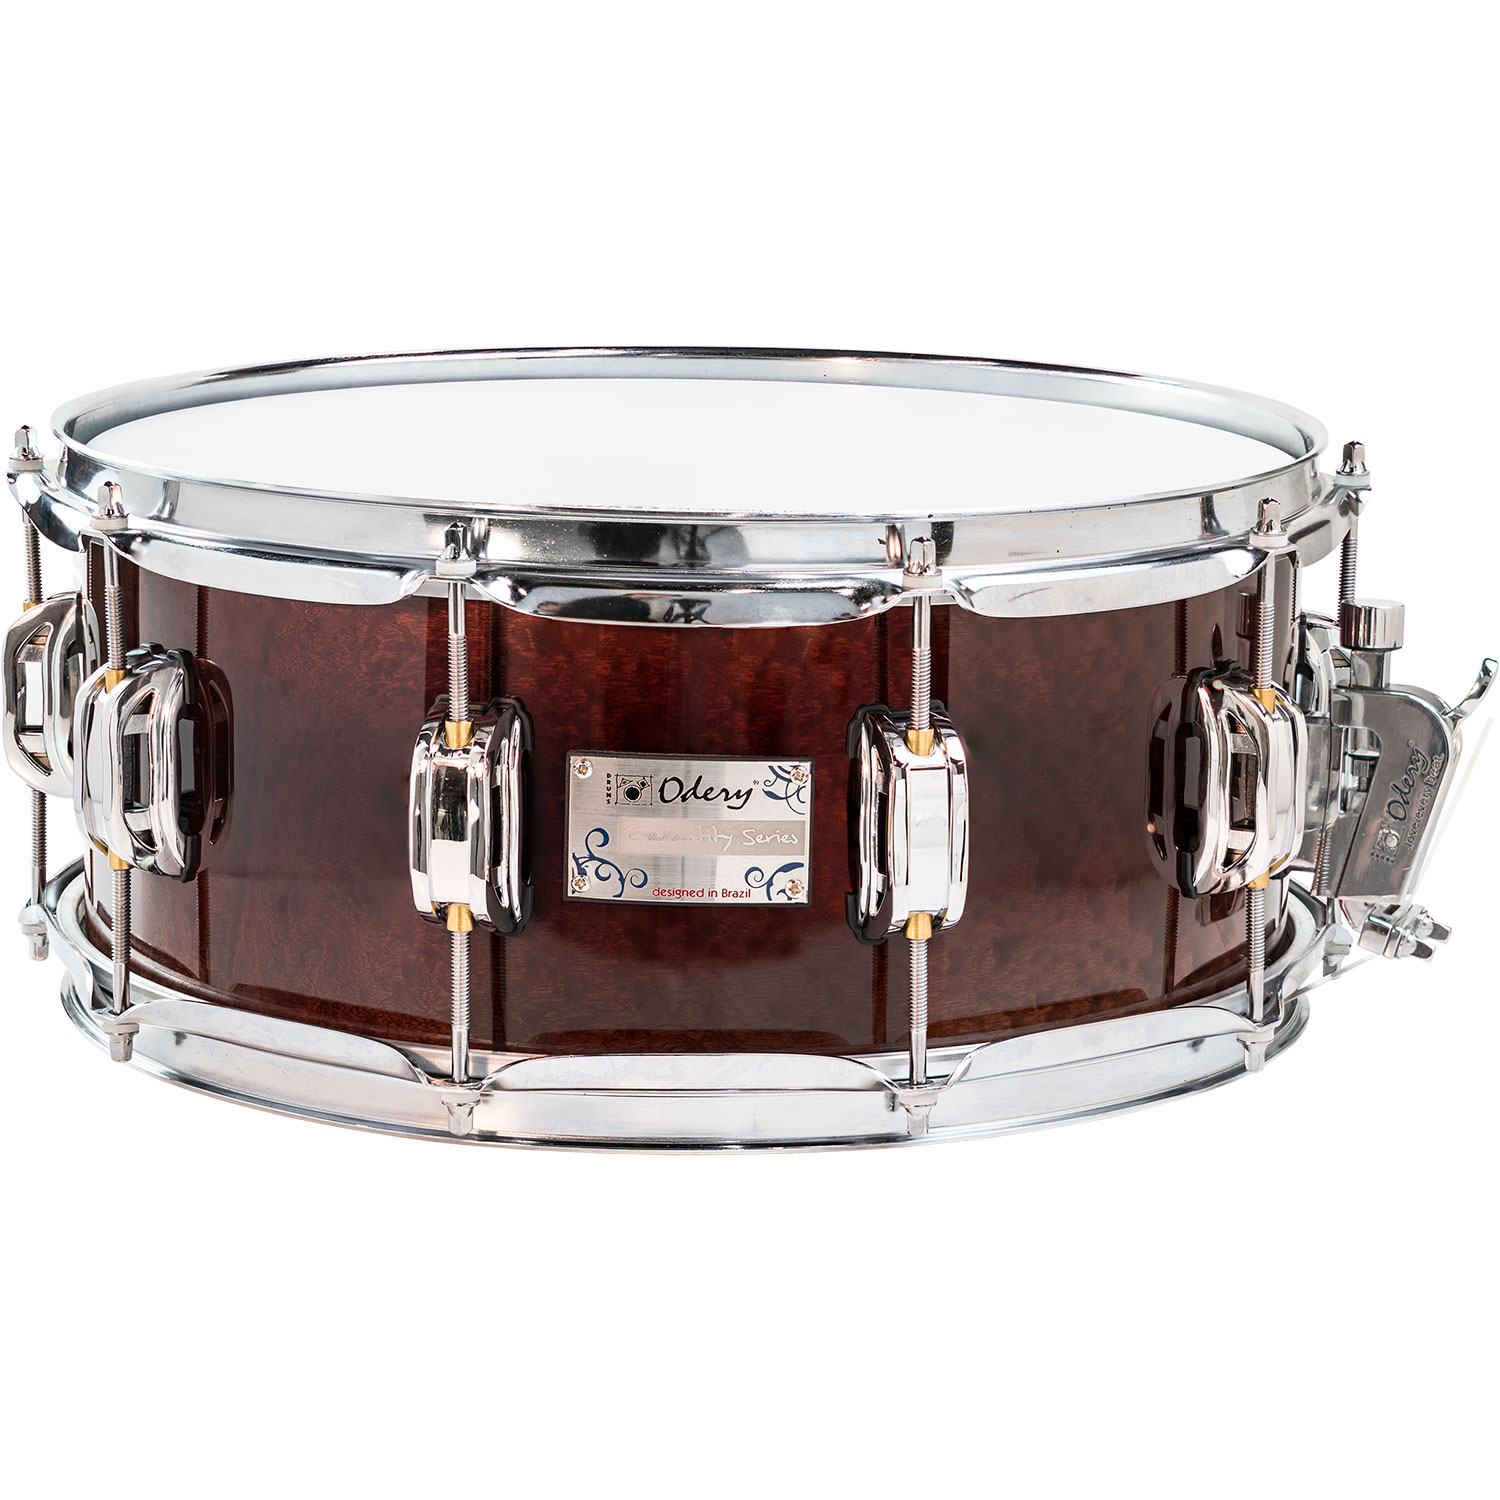 "Odery Drums 14"" x 6"" Eyedentity Series Sapele Snare Drum in Explosion"